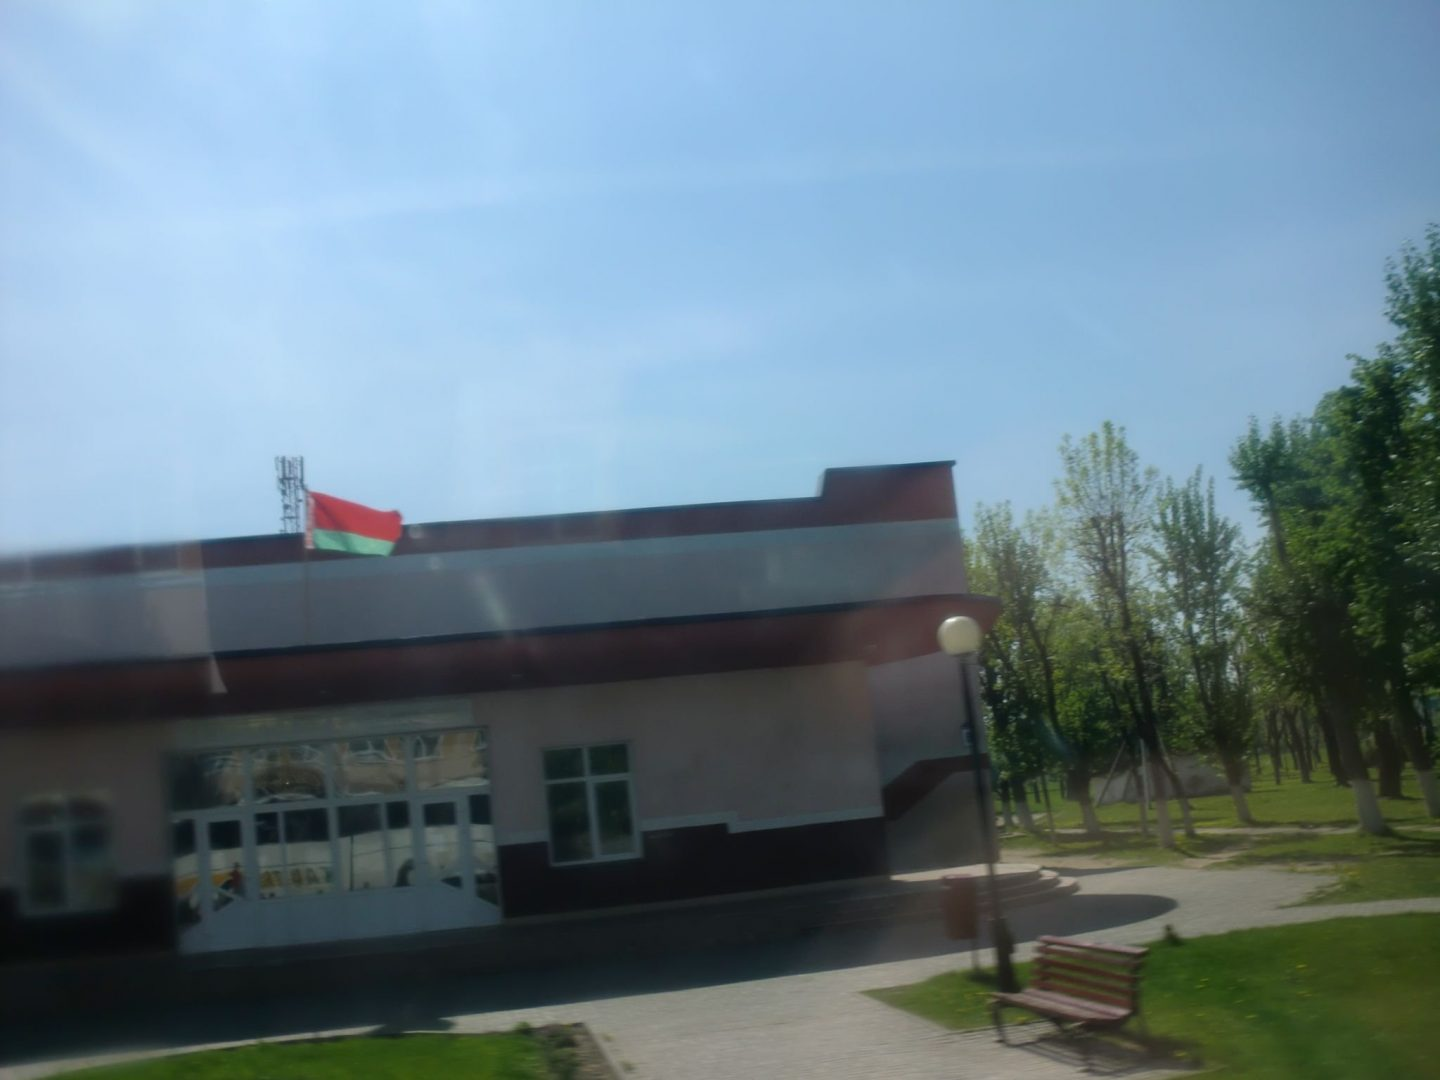 From Vilnius to Minsk by bus - A house with trees in the background